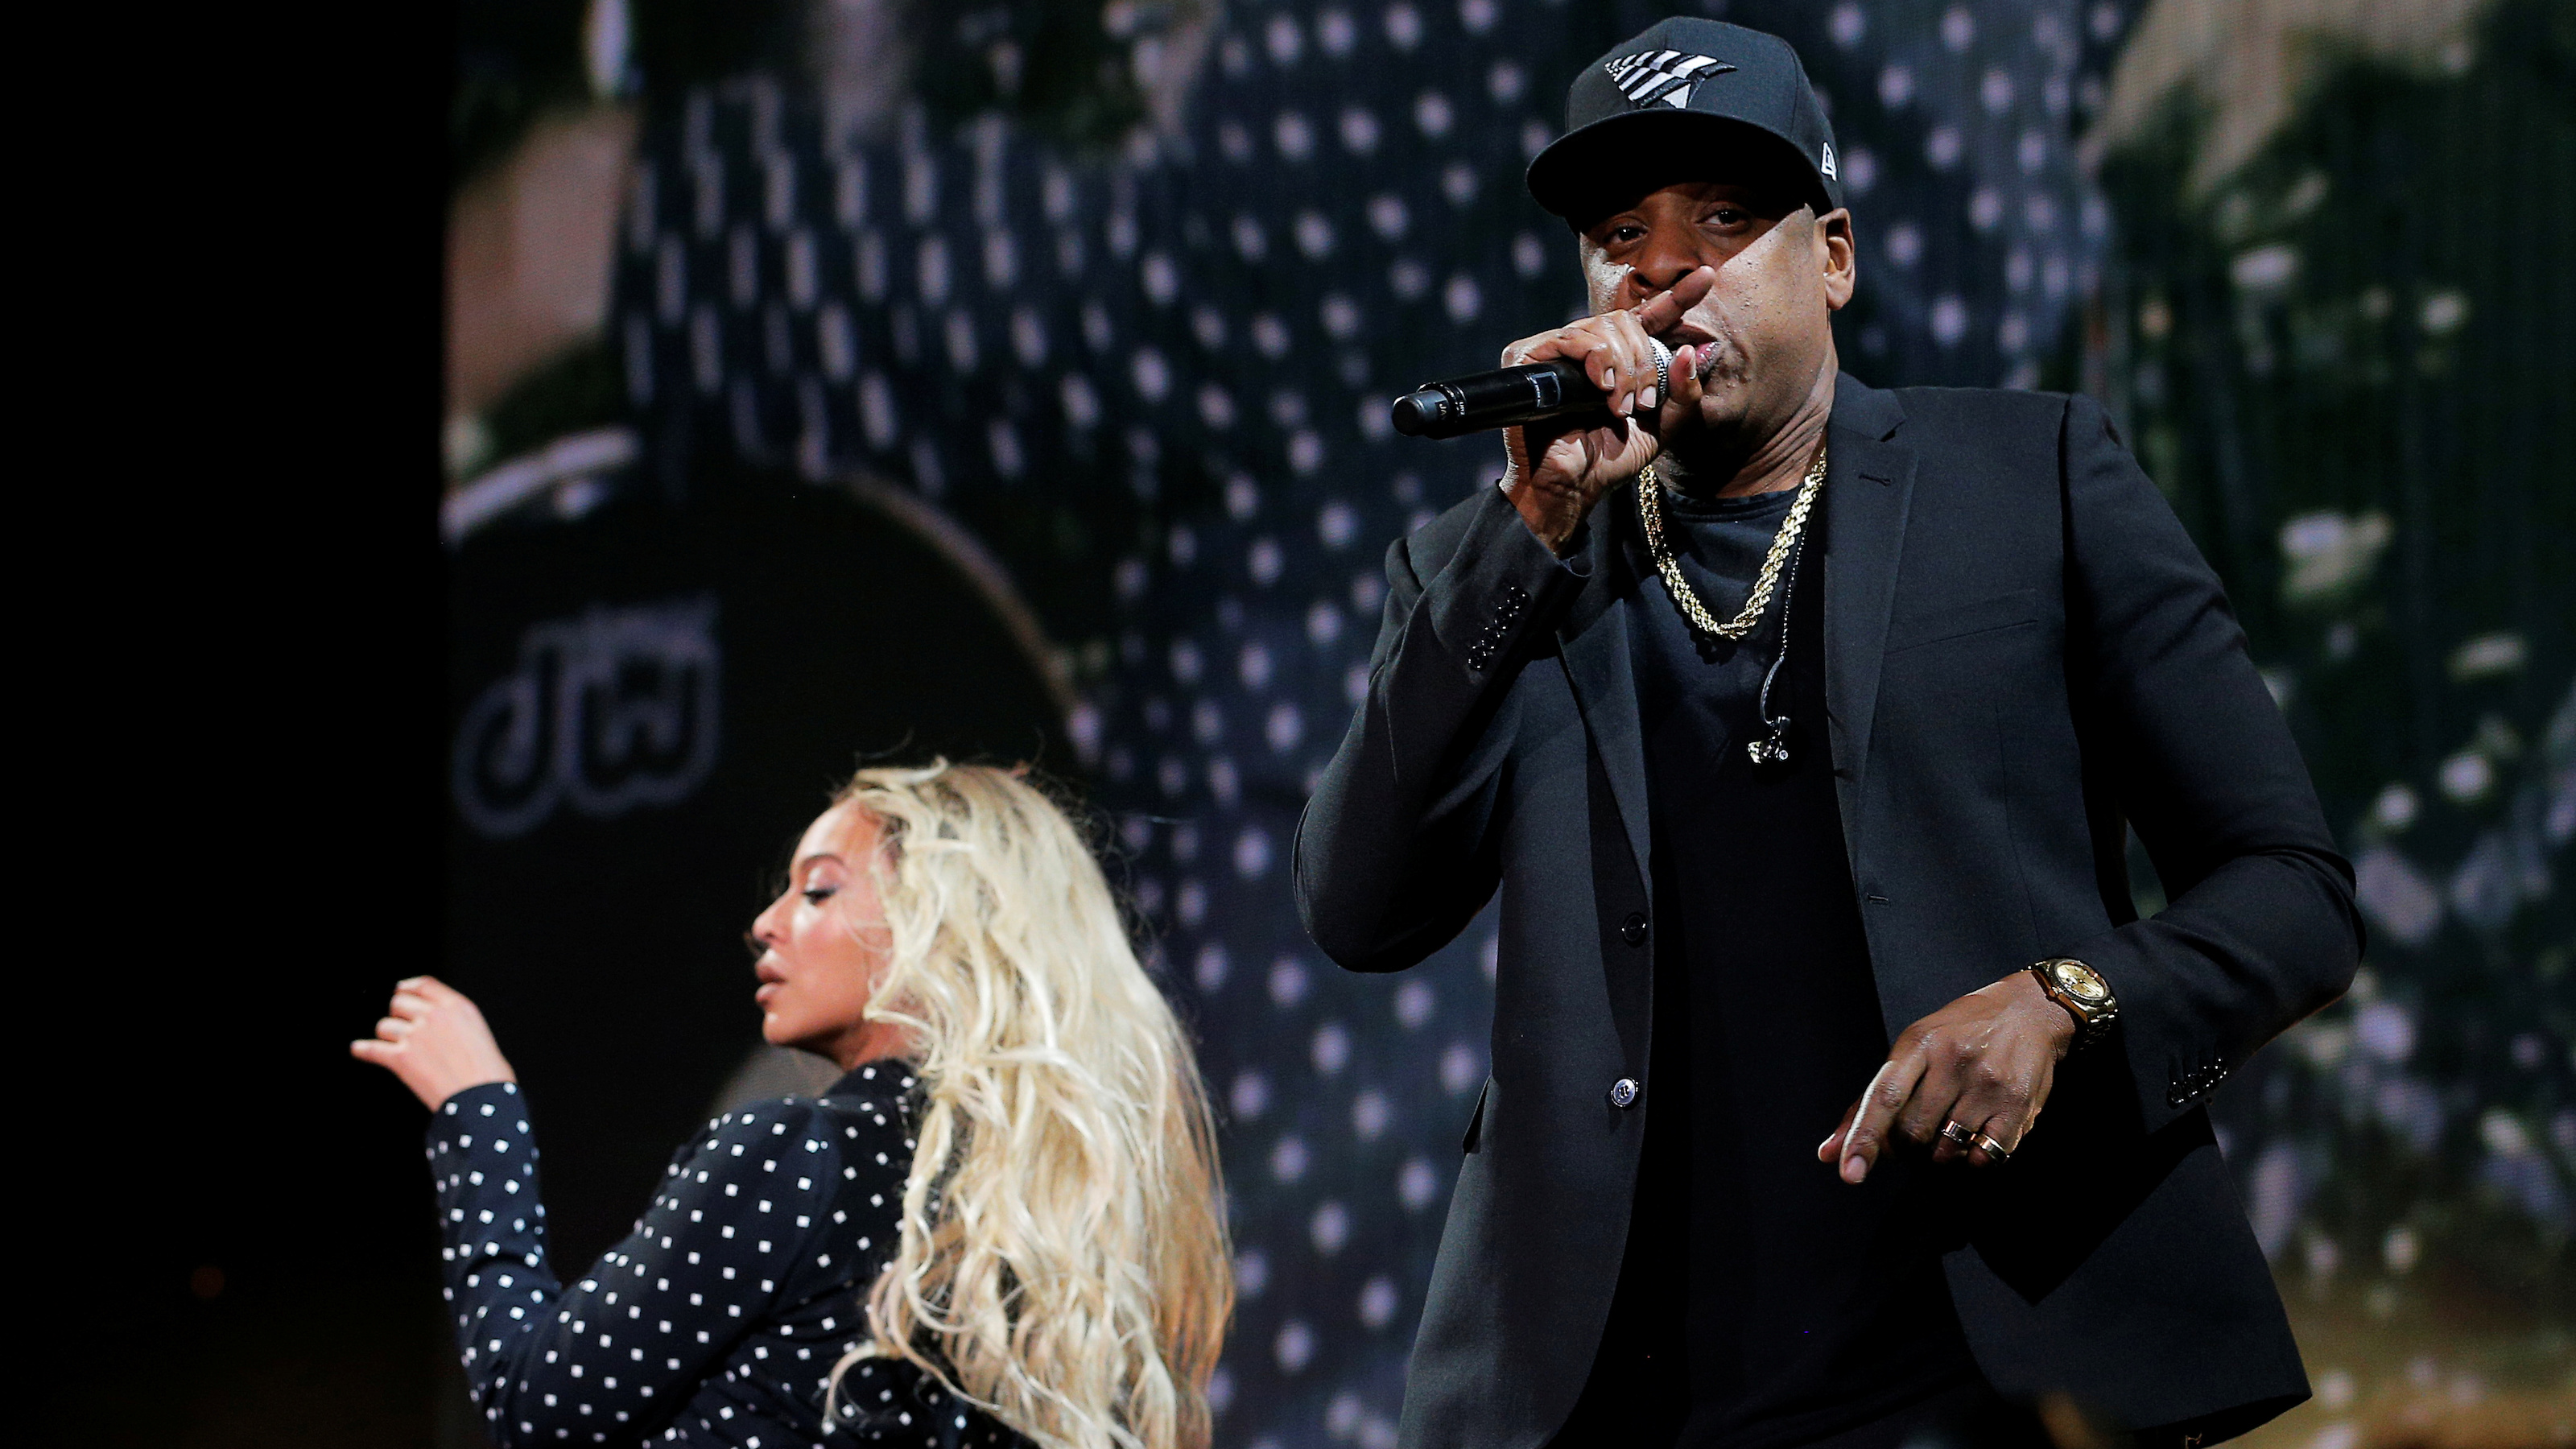 jay z s 4 44 concert ticket prices are a brilliant strategy quartz